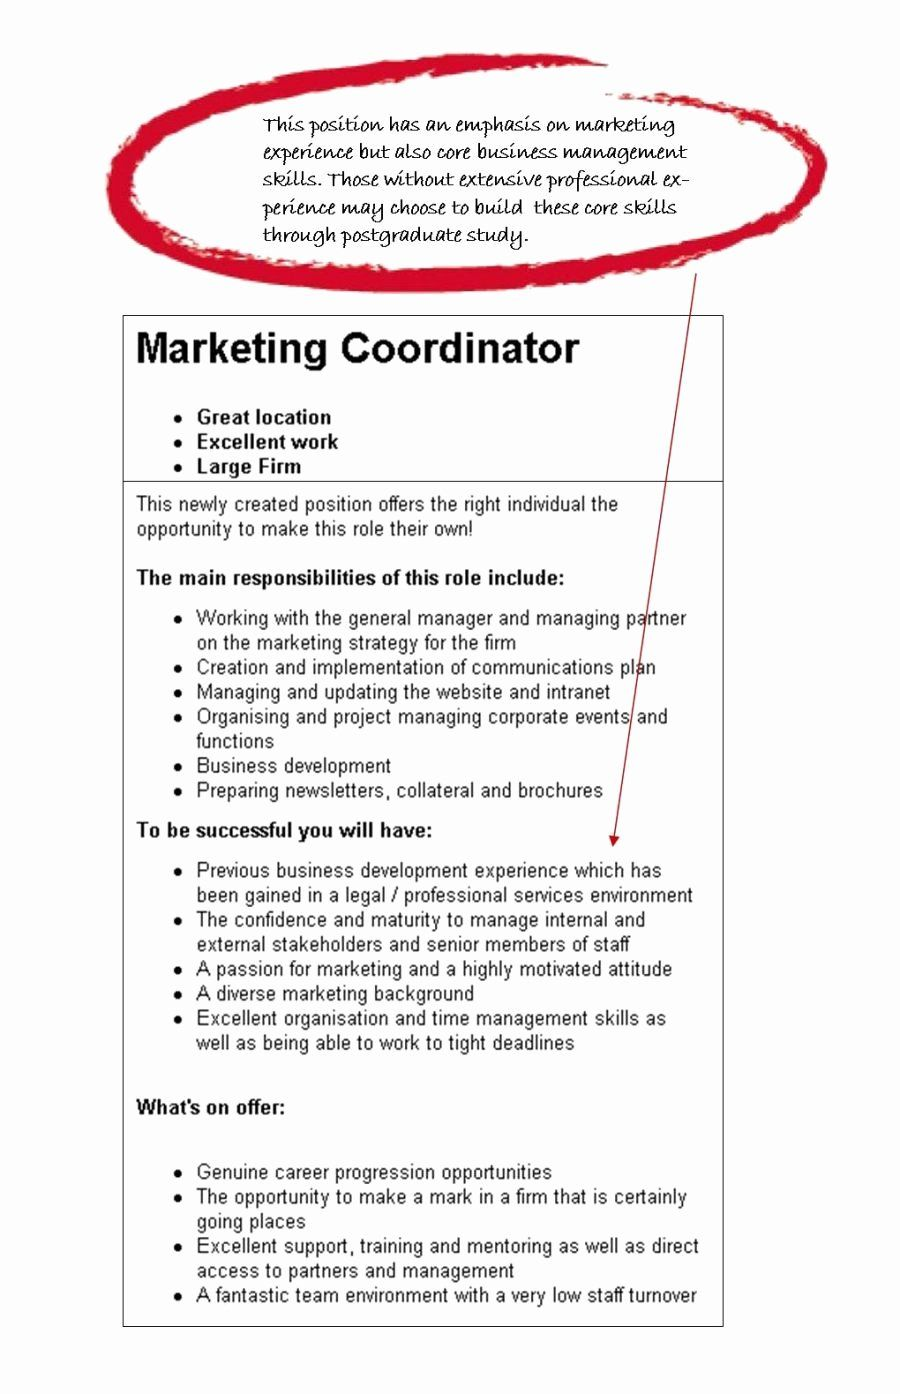 Marketing Resume Objective Examples Unique Objectives For Resume Resume Resume Objective Examples Resume Objective Sample Resume Objective Statement